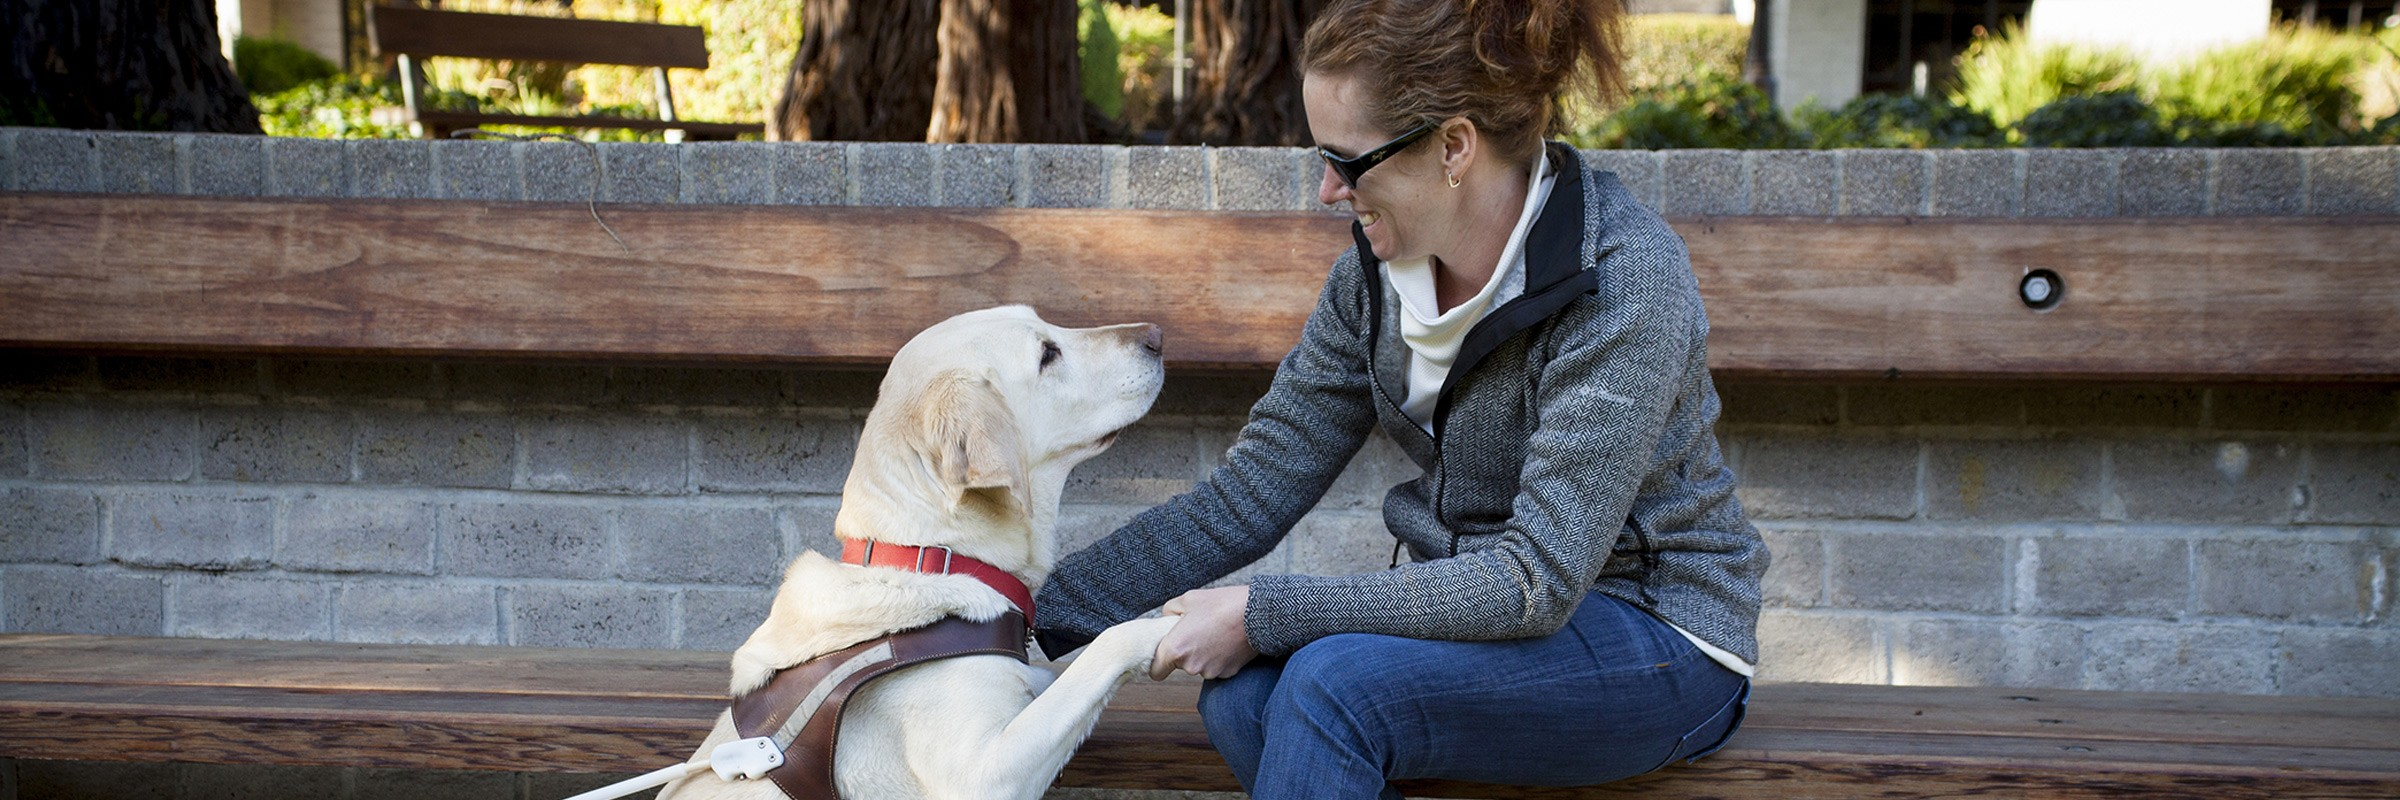 Guide Dogs Student Programs